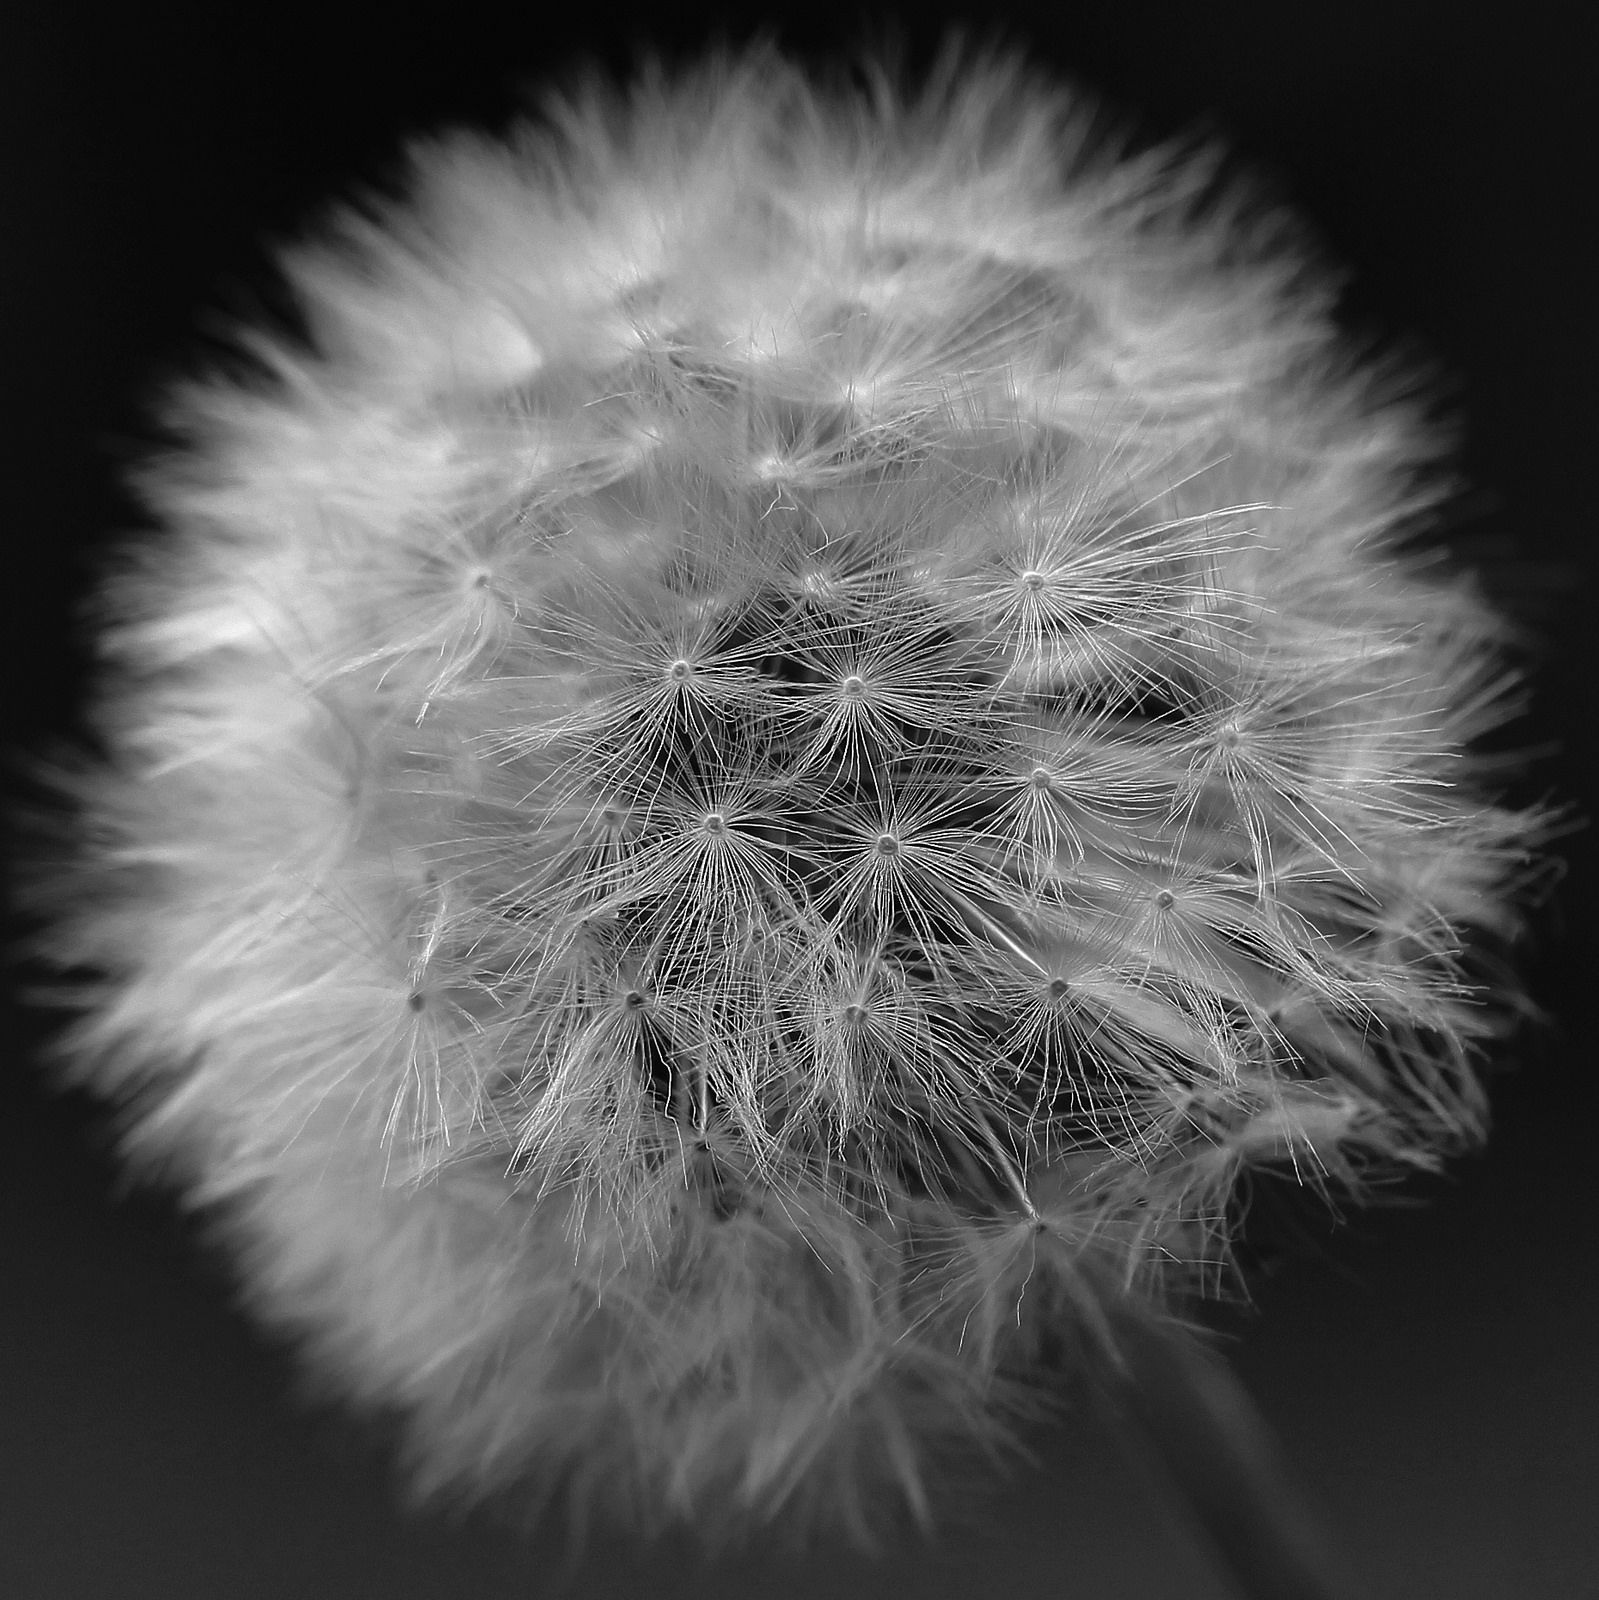 https://flic.kr/p/D5txw4 | Dandelion BW [Project 365 2015 Reject] | I have a folder full of reject shots that never made it to the featured shot on the day in 2015, and never got the TLC needed to put them onto Flickr. I'll work my way through them, and upload a few that are worth keeping.